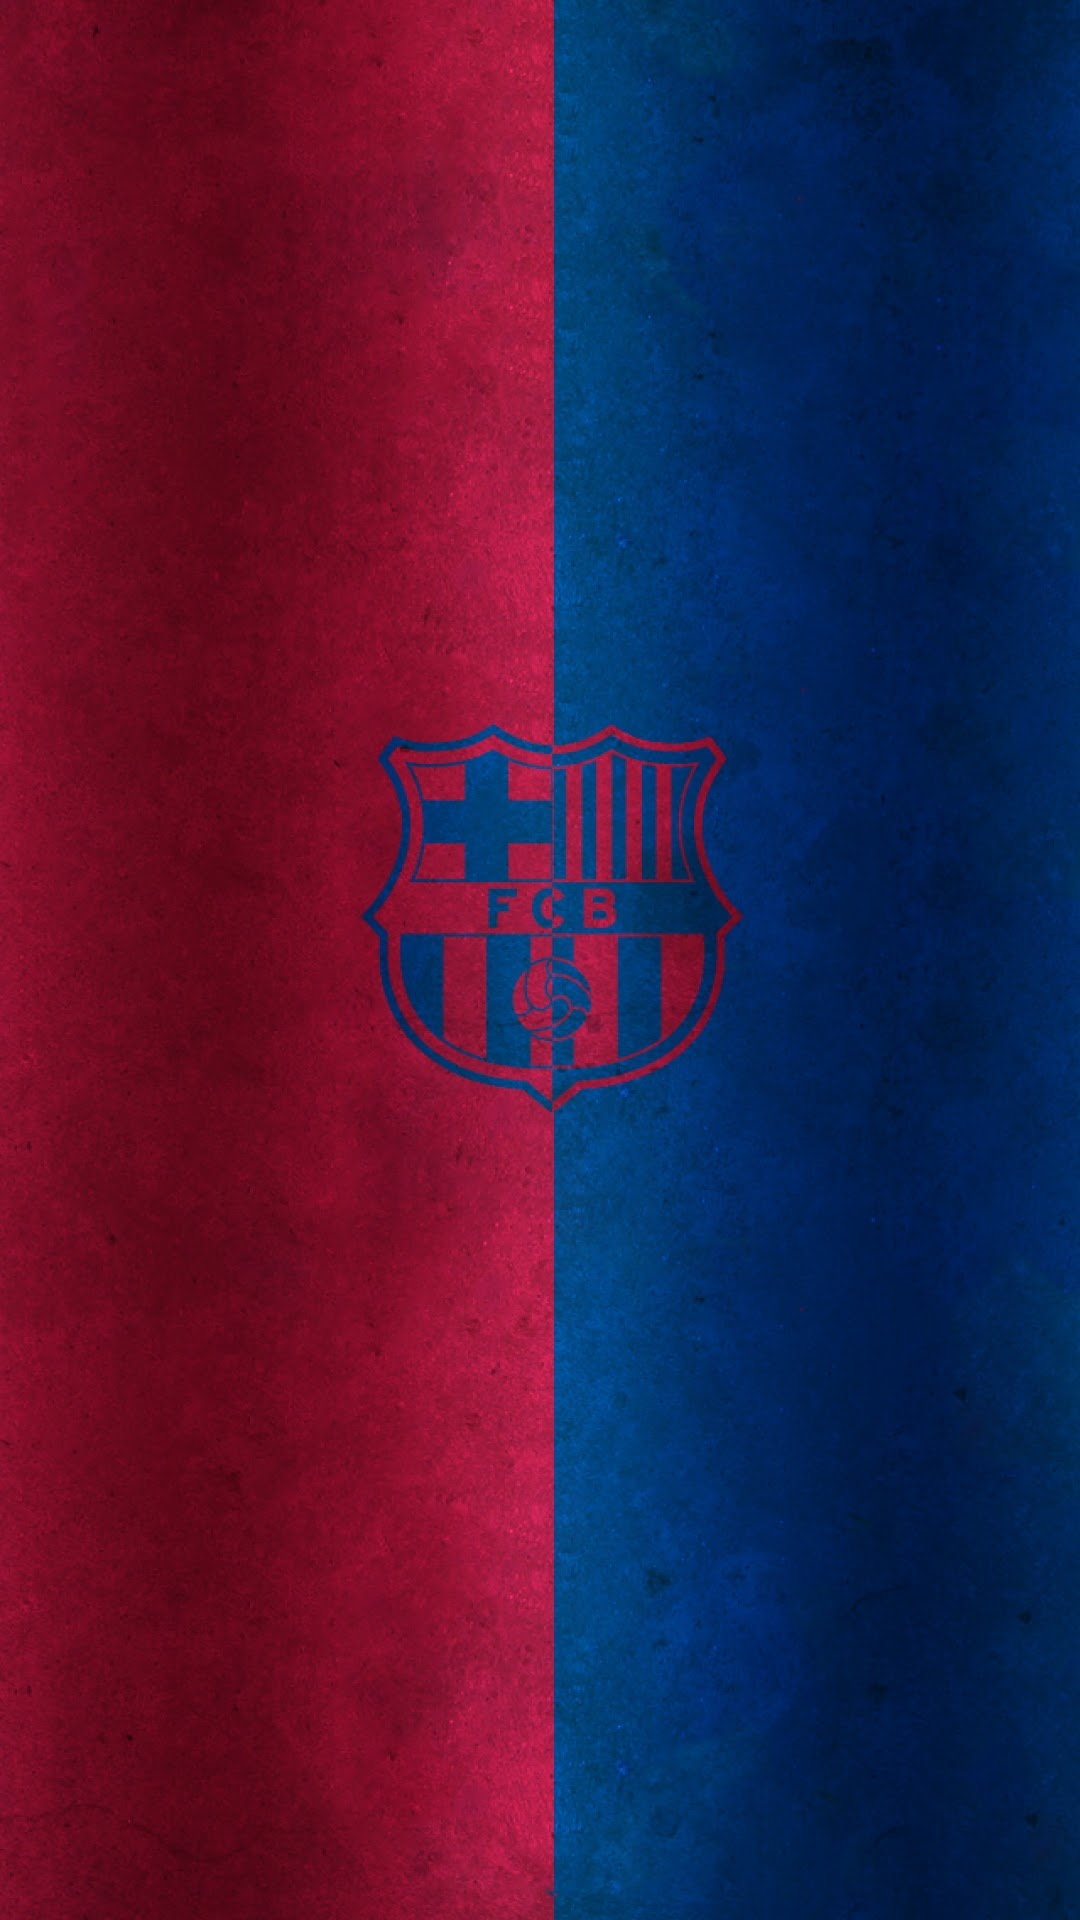 galaxy note hd wallpapers red and blue fc barcelona logo. Black Bedroom Furniture Sets. Home Design Ideas